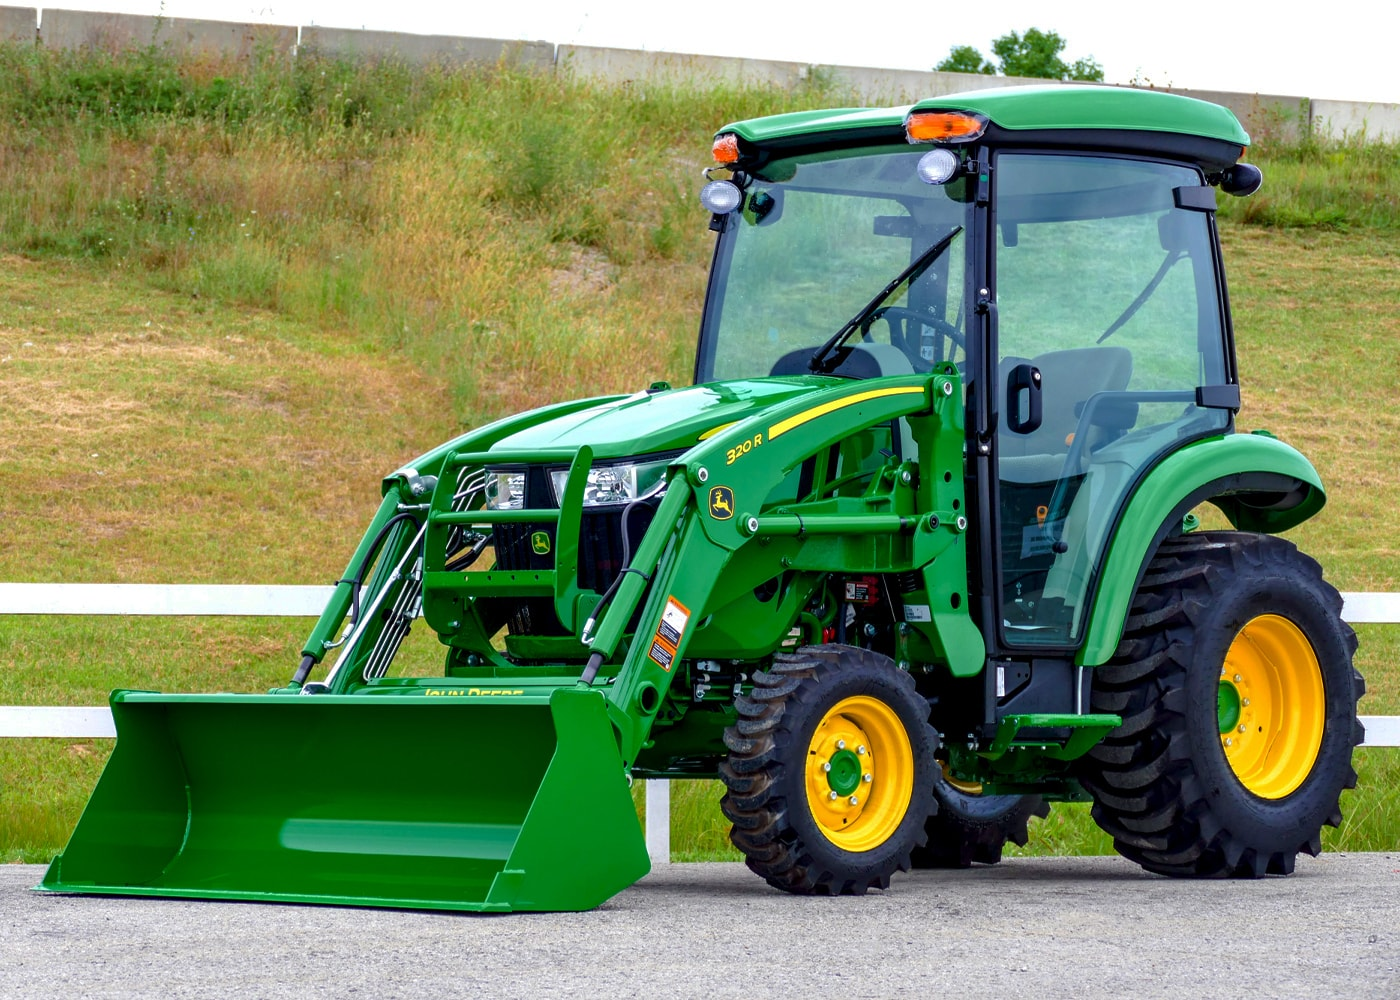 3046R Compact Tractor with 320R Loader and Cab